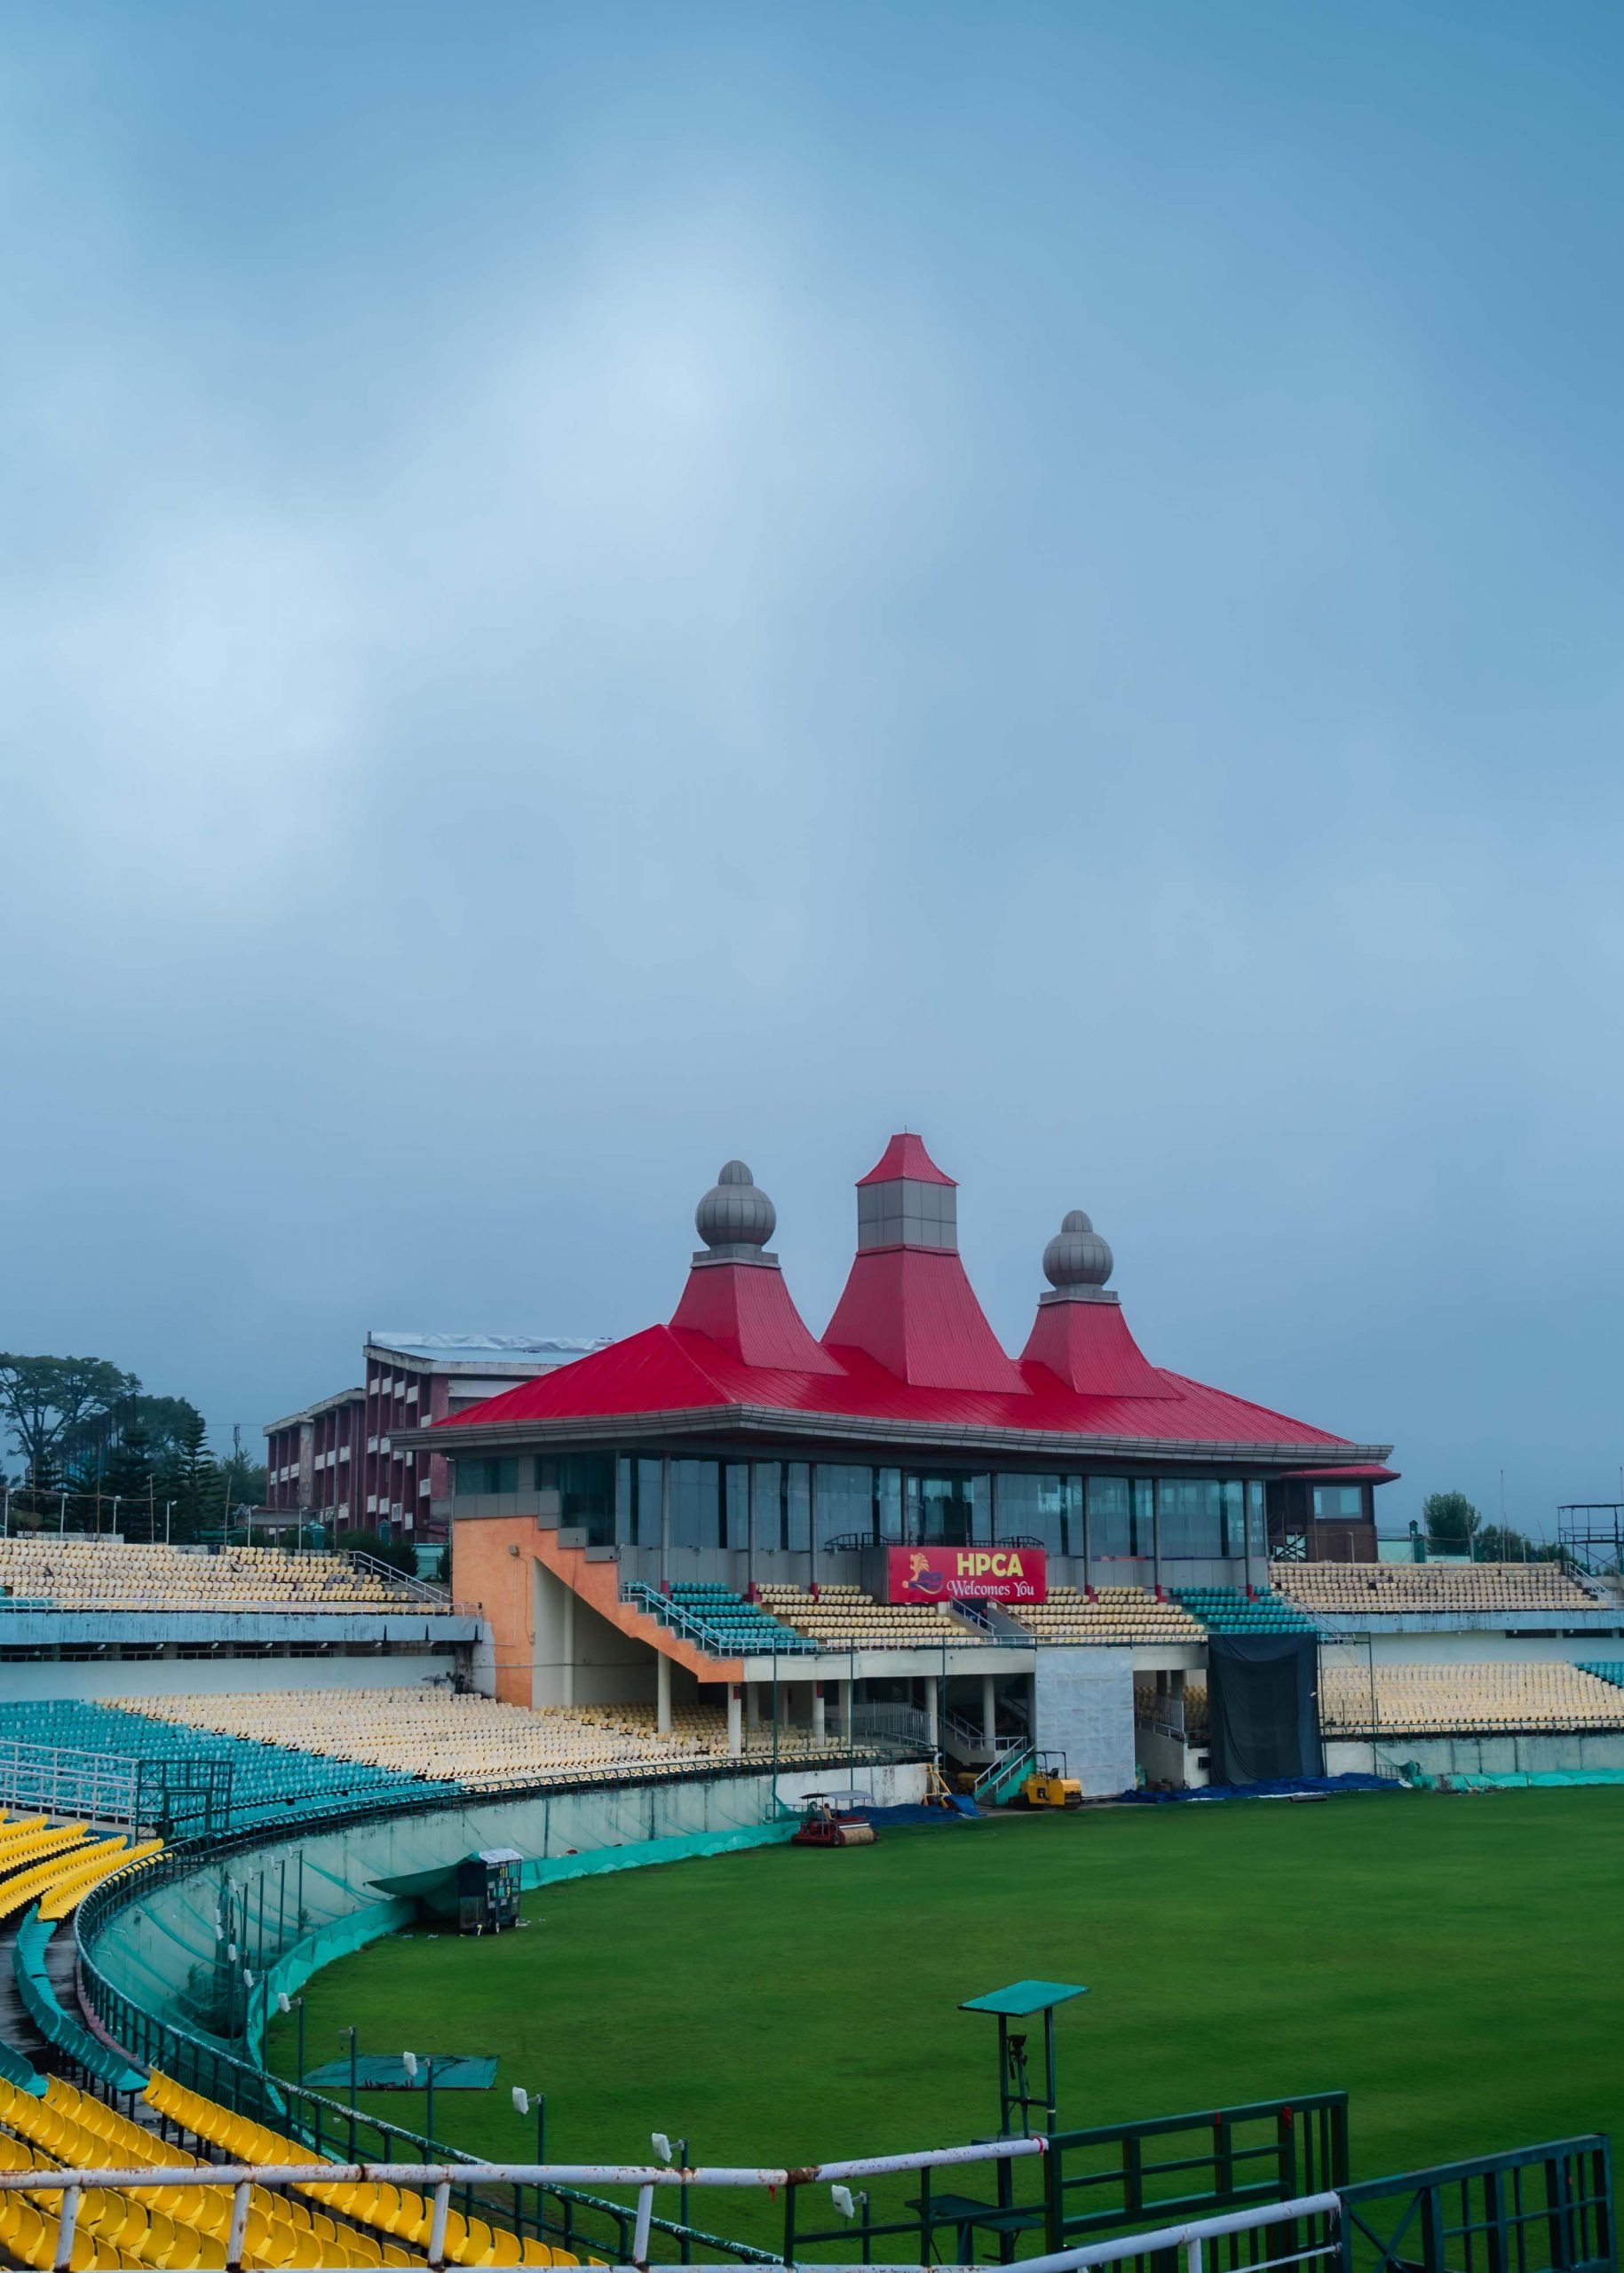 Take a tour to Worlds Highest Cricket Stadium